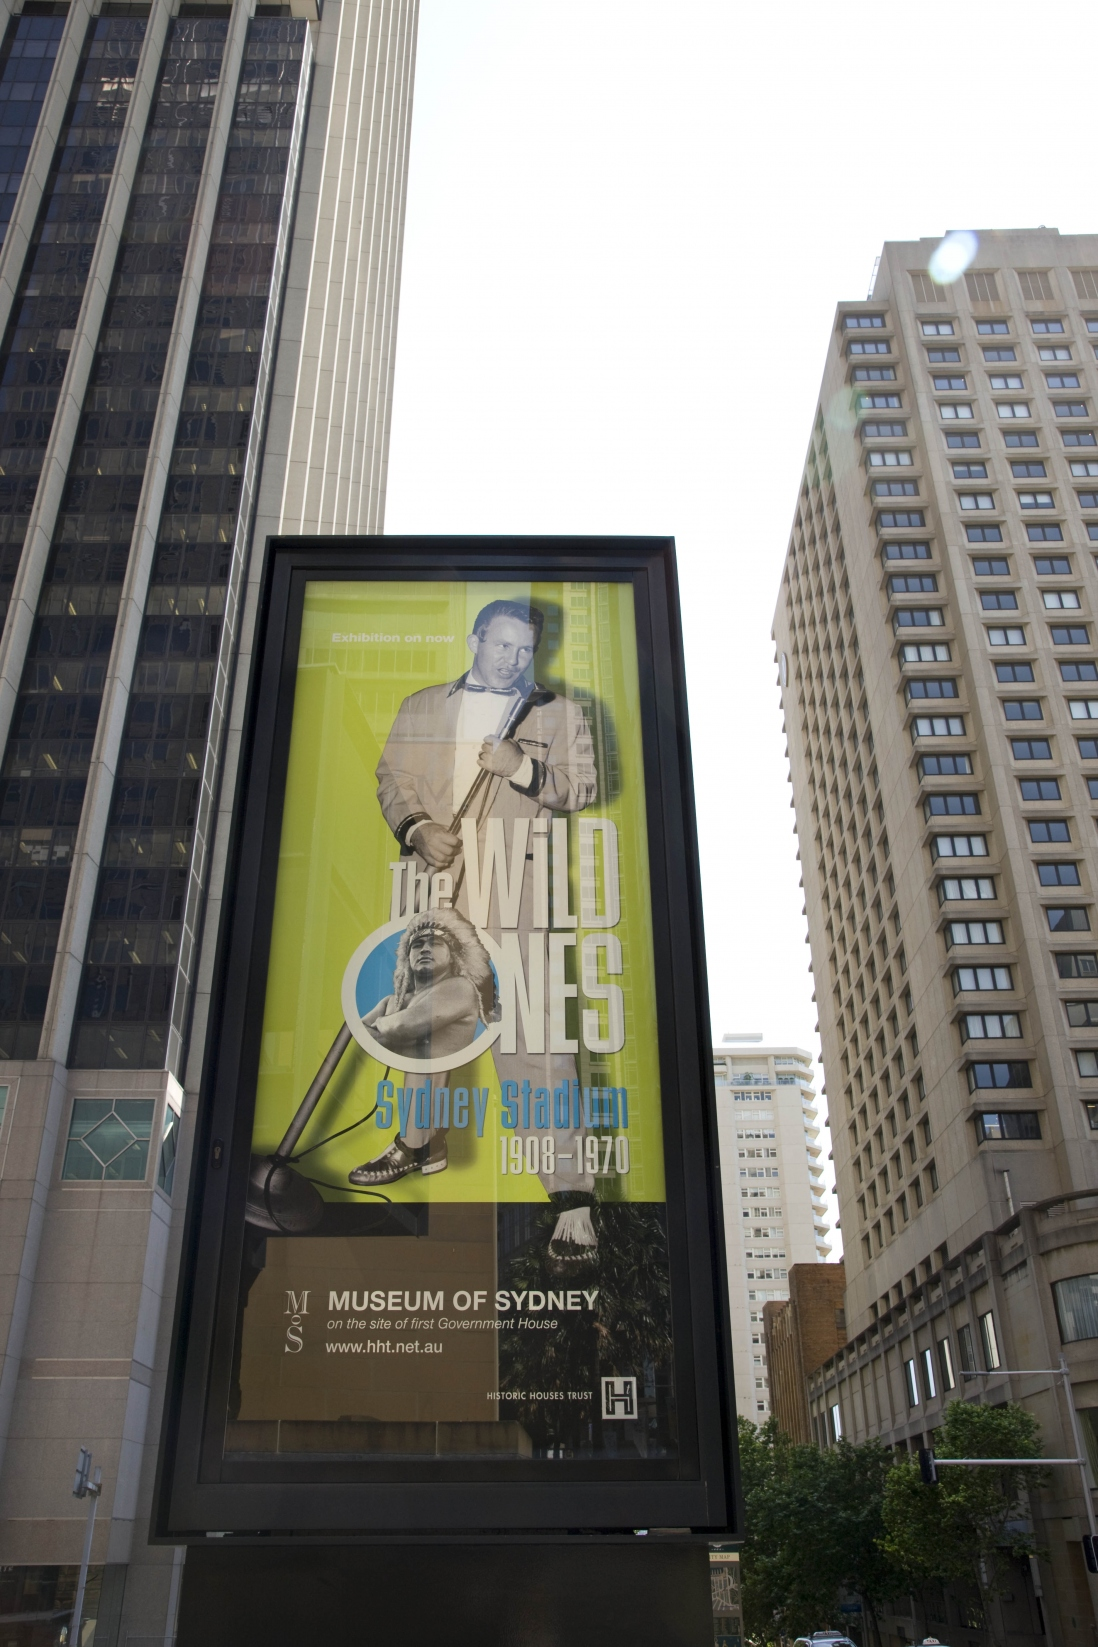 Large sign outside museum reads Wild Ones with a picture of a man holding a microphone.